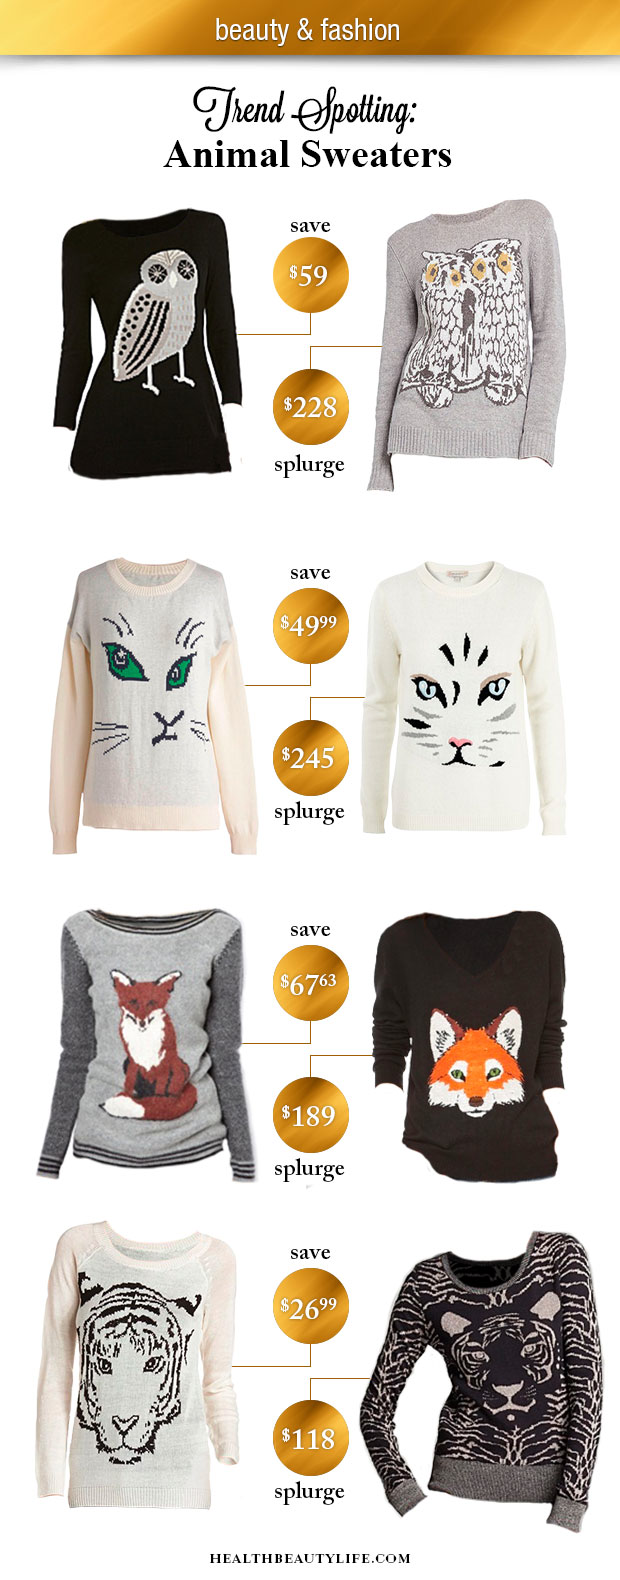 animal-sweaters-trend-spotting